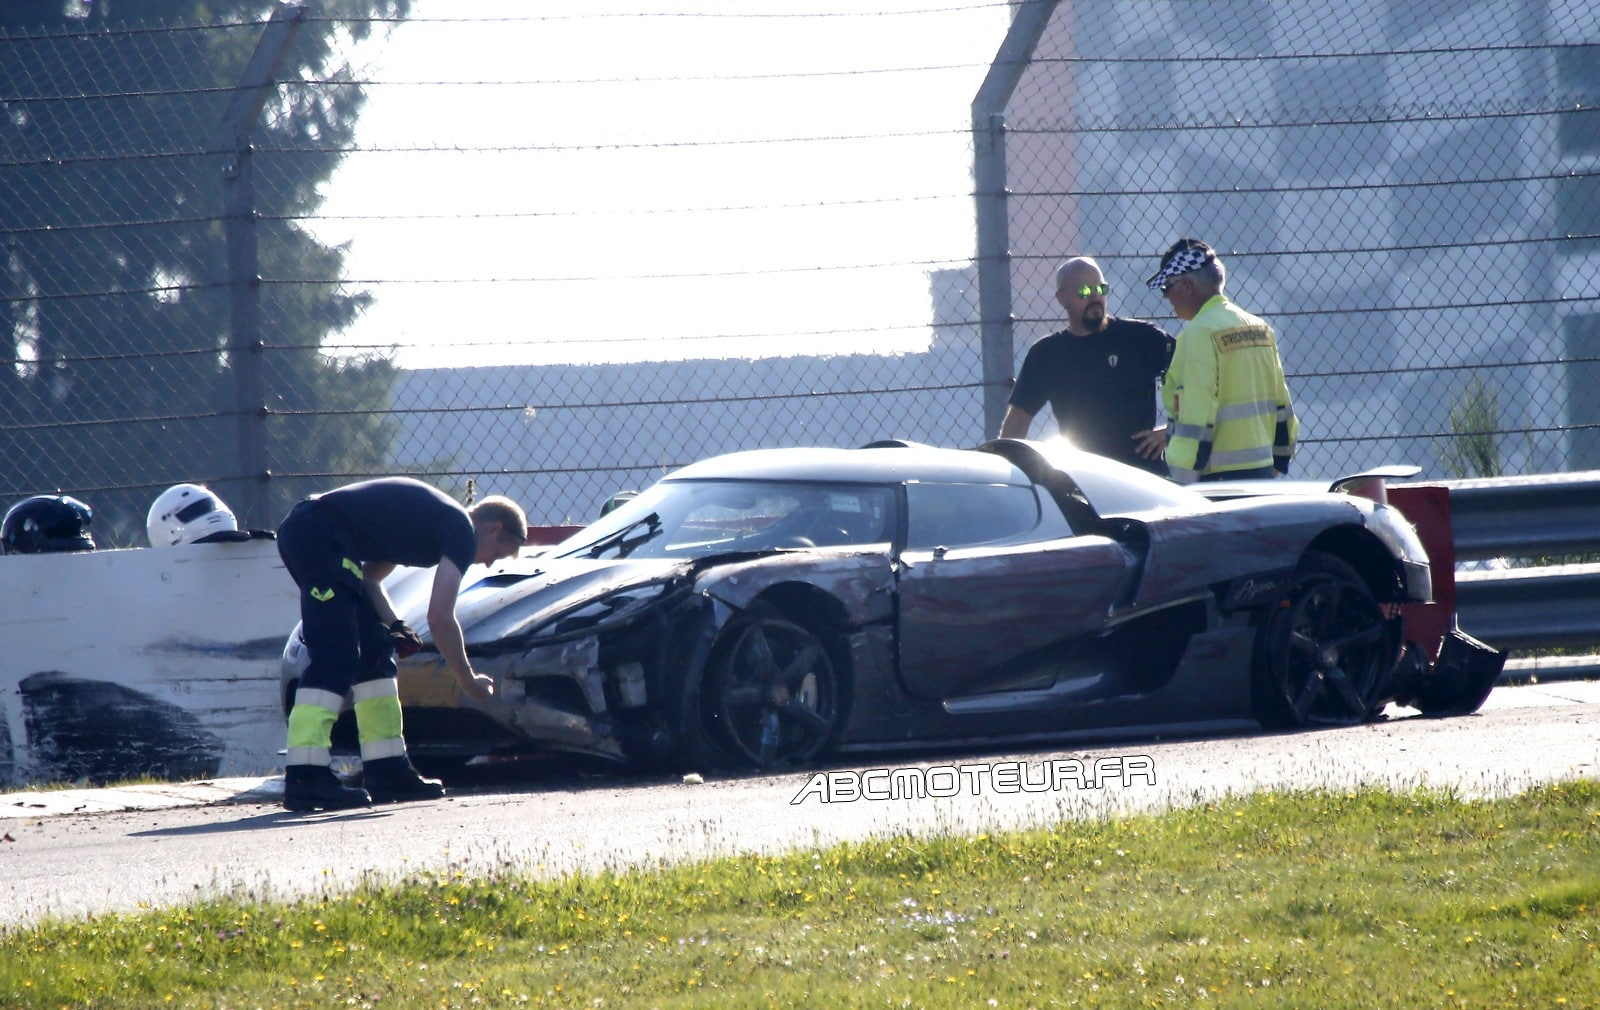 Nürburgring : une Koenigsegg Agera R lourdement accidentée